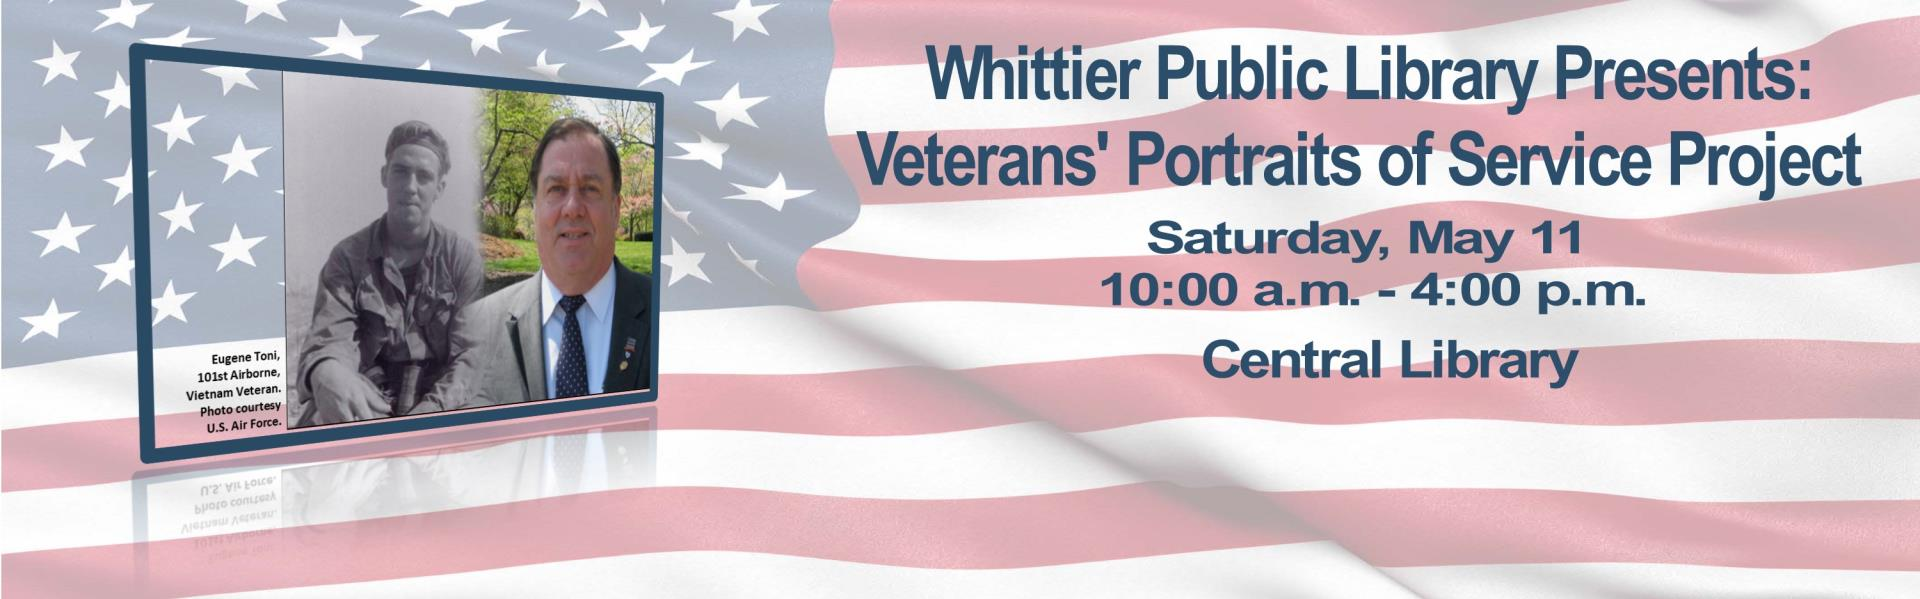 Veterans' Portraits of Service Project- Saturday, May 11  10:00 A.M. - 4:00 P.M.